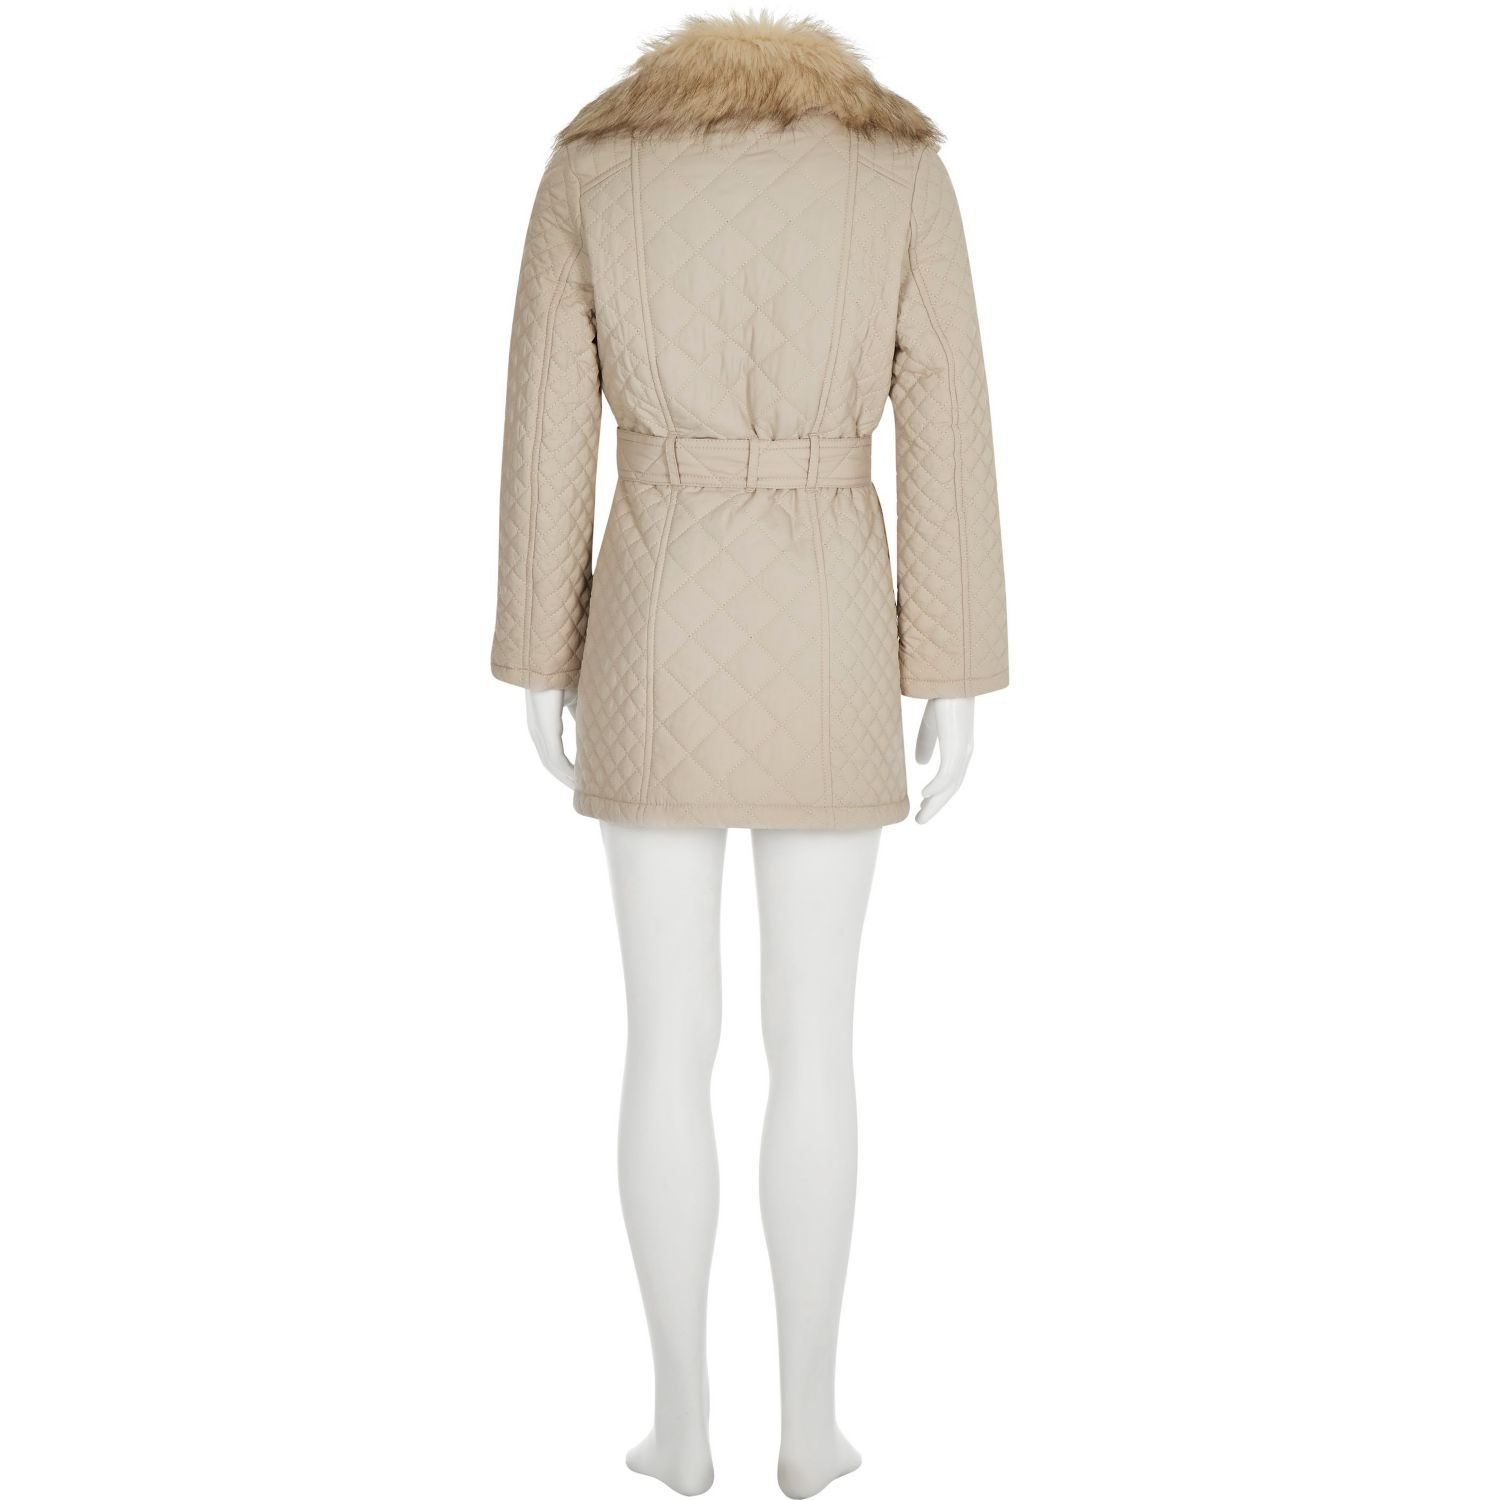 adc35de1399b River Island Girls Cream Quilted Belted Jacket in Natural - Lyst